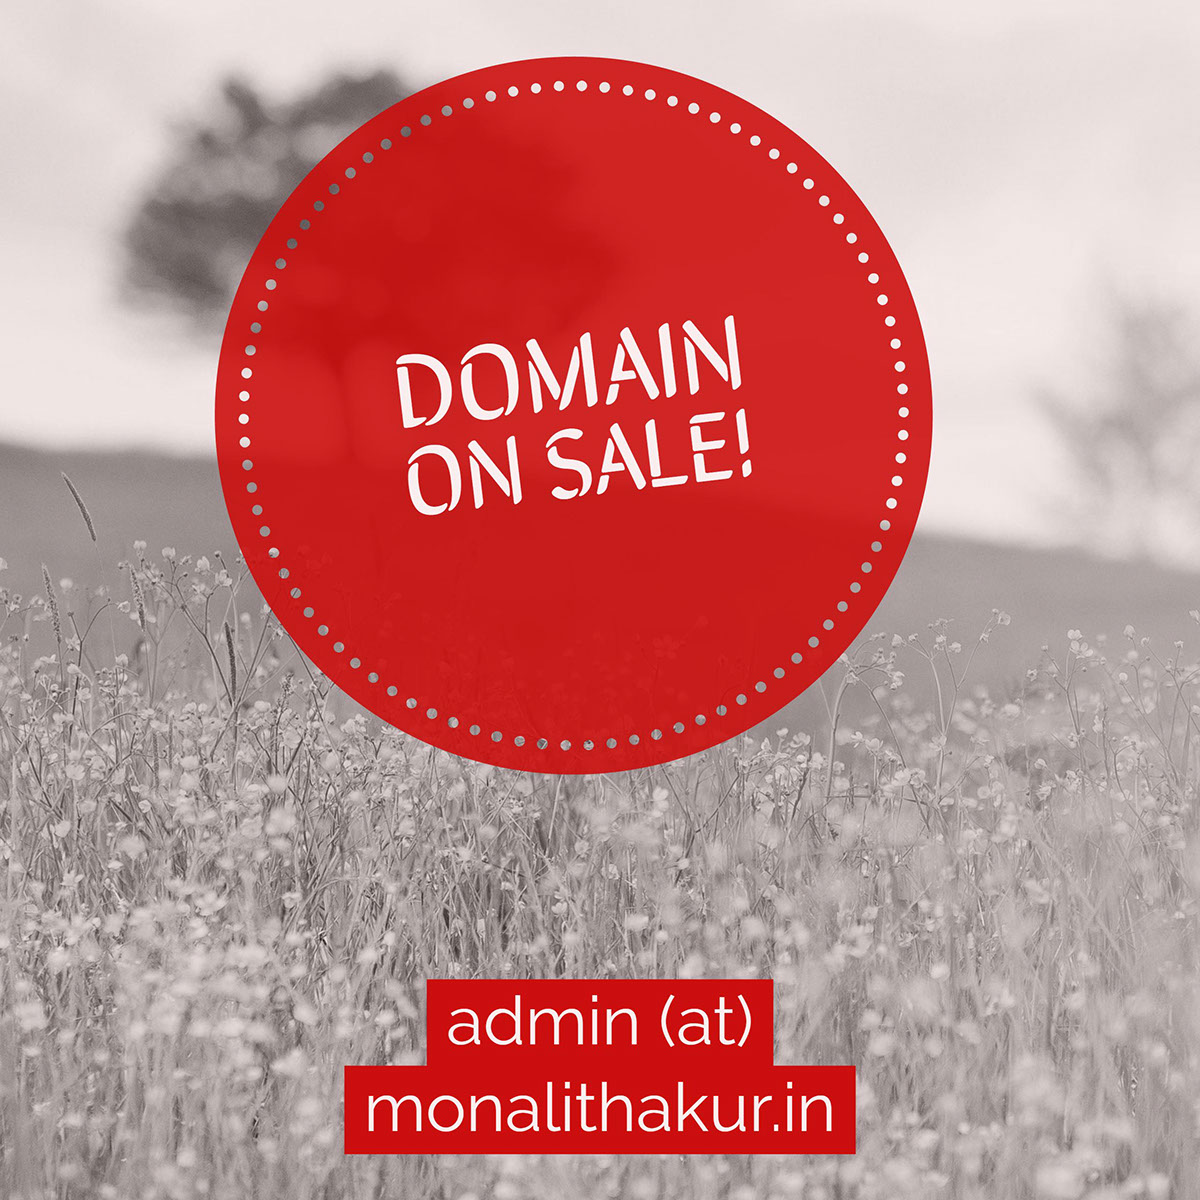 Domain on SALE!